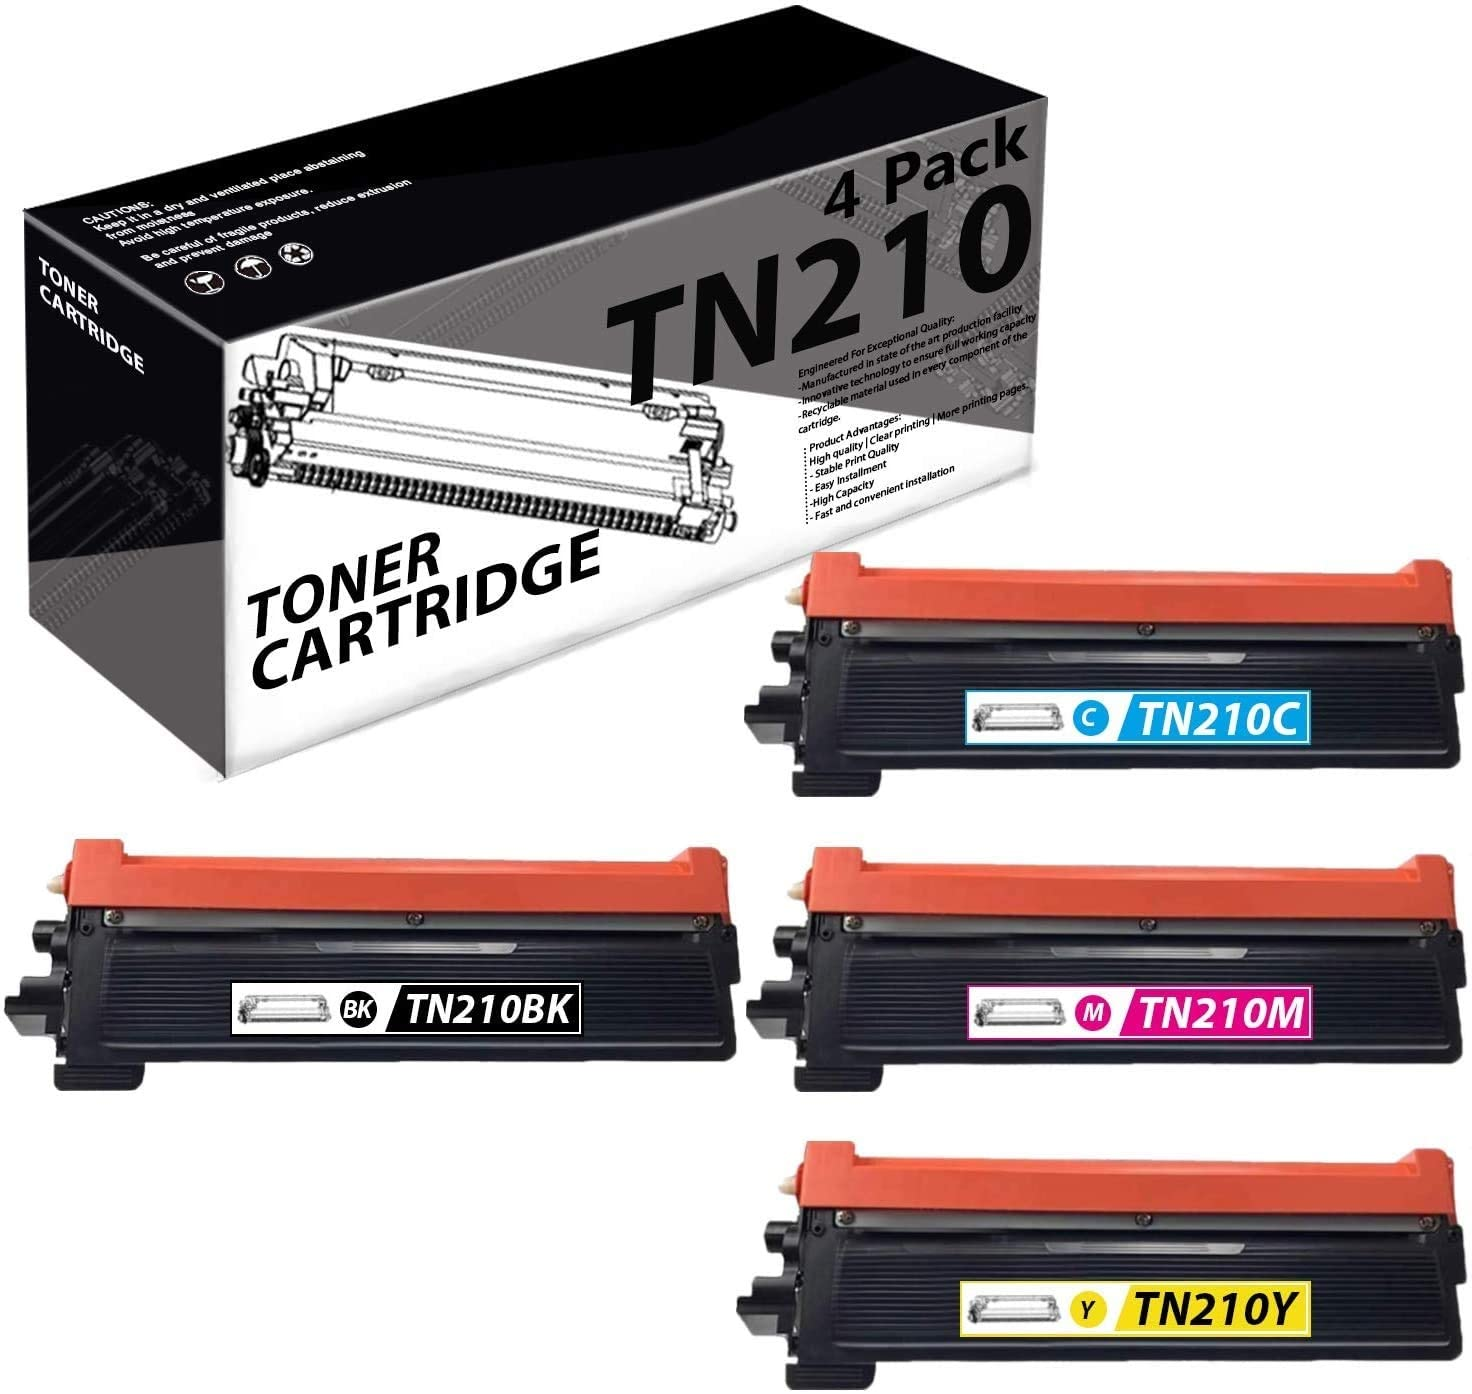 TN210(4 Pack-1K+1C+1M+1Y) Compatible Toner Cartridge Replacement for Brother DCP-9010CN HL-8070 8370 3040CN MFC-9010CN 9120CN 9320CN/CW Printers.